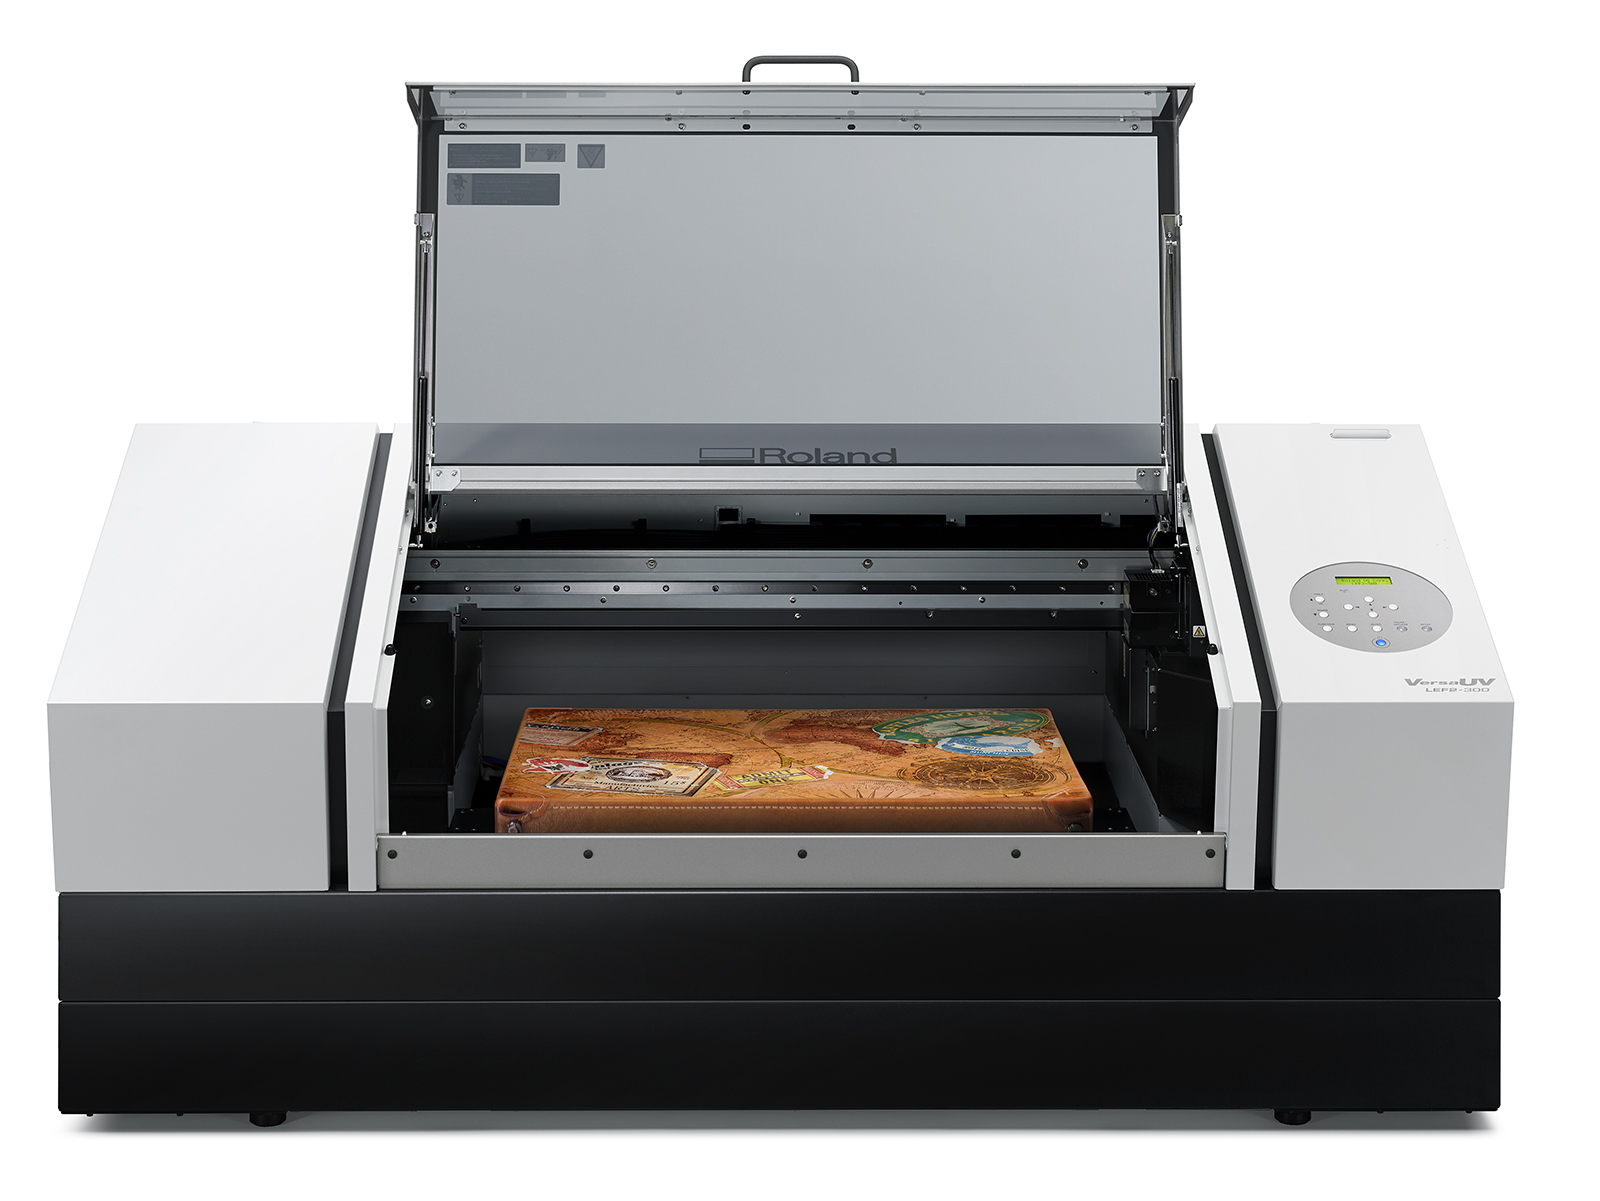 Image of the new Roland VersaUV LEF2-300D flatbed UV printer.